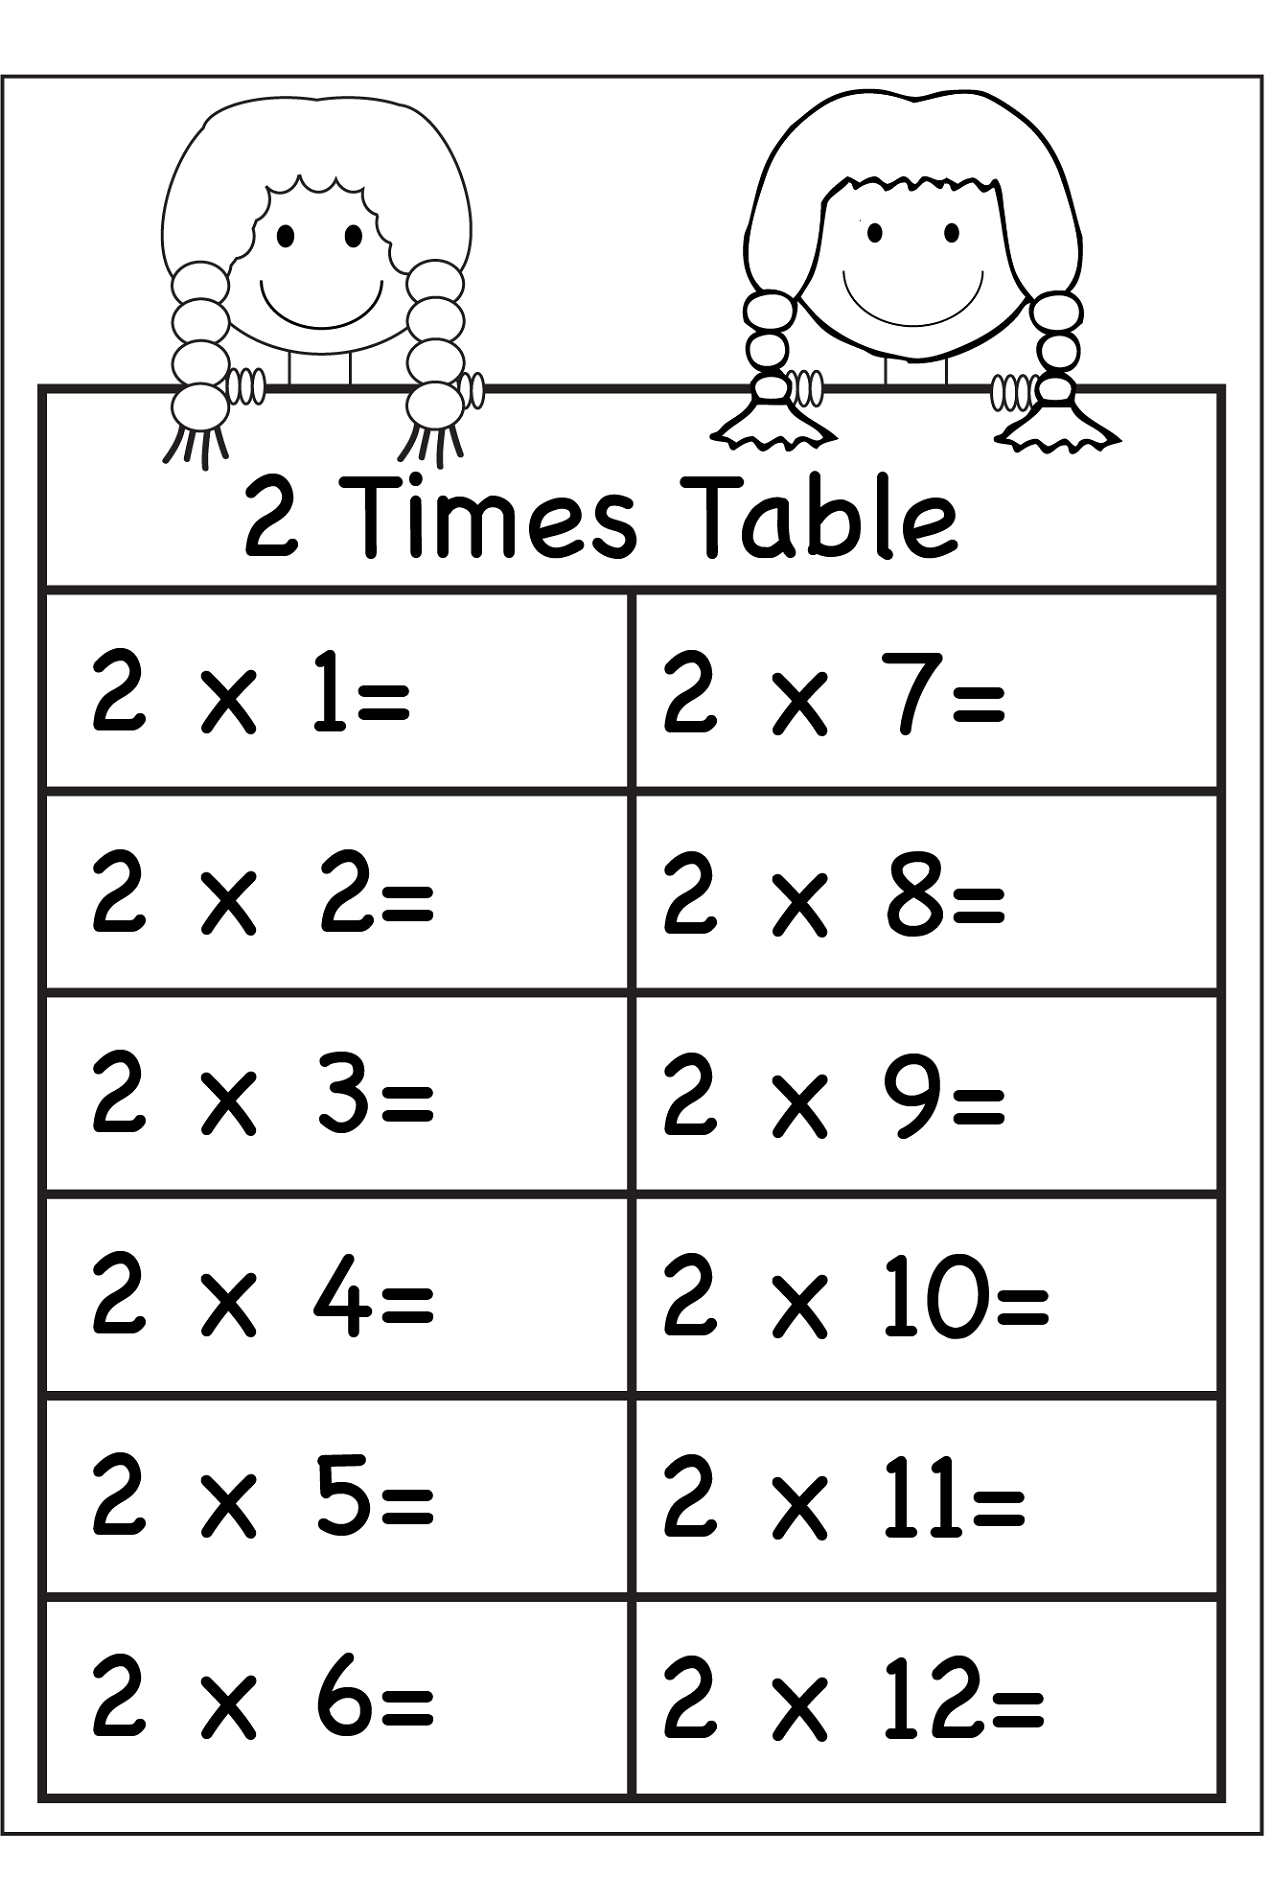 Printable 2 Times Table Worksheets